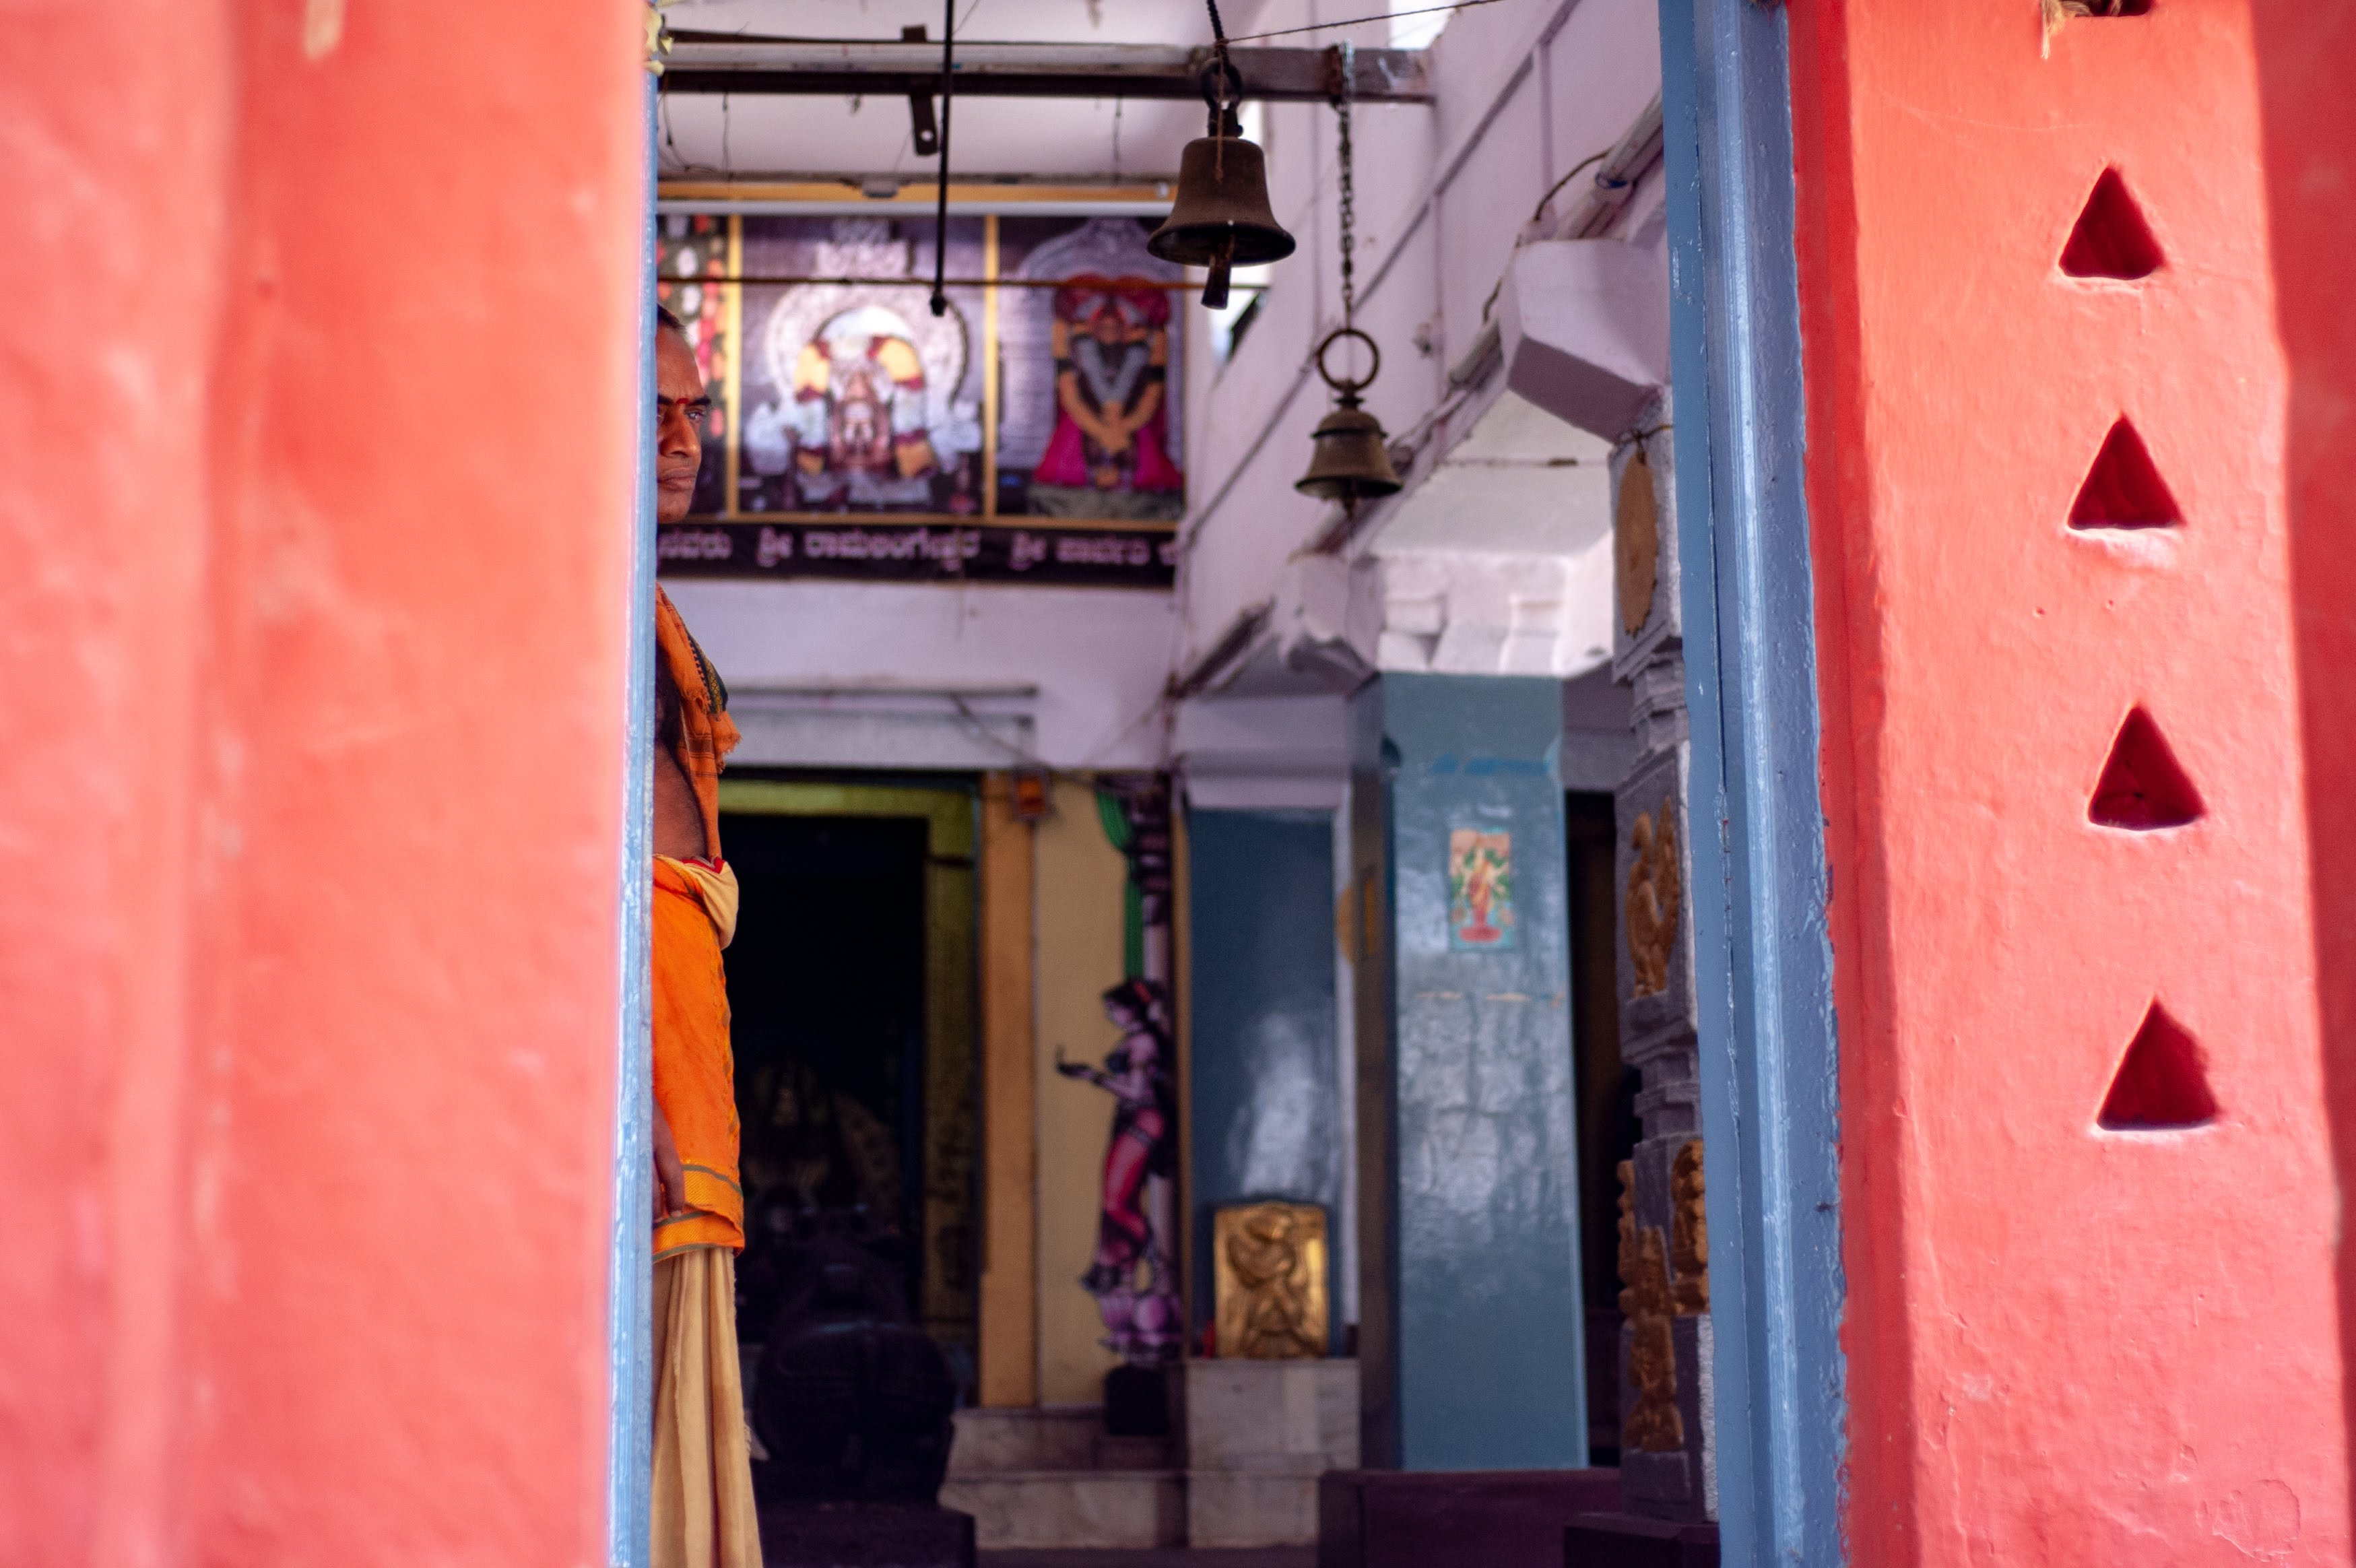 The temple priest of Chowdeshwari Temple in Chikpet, Bangalore watches the street through the temple's doorway.